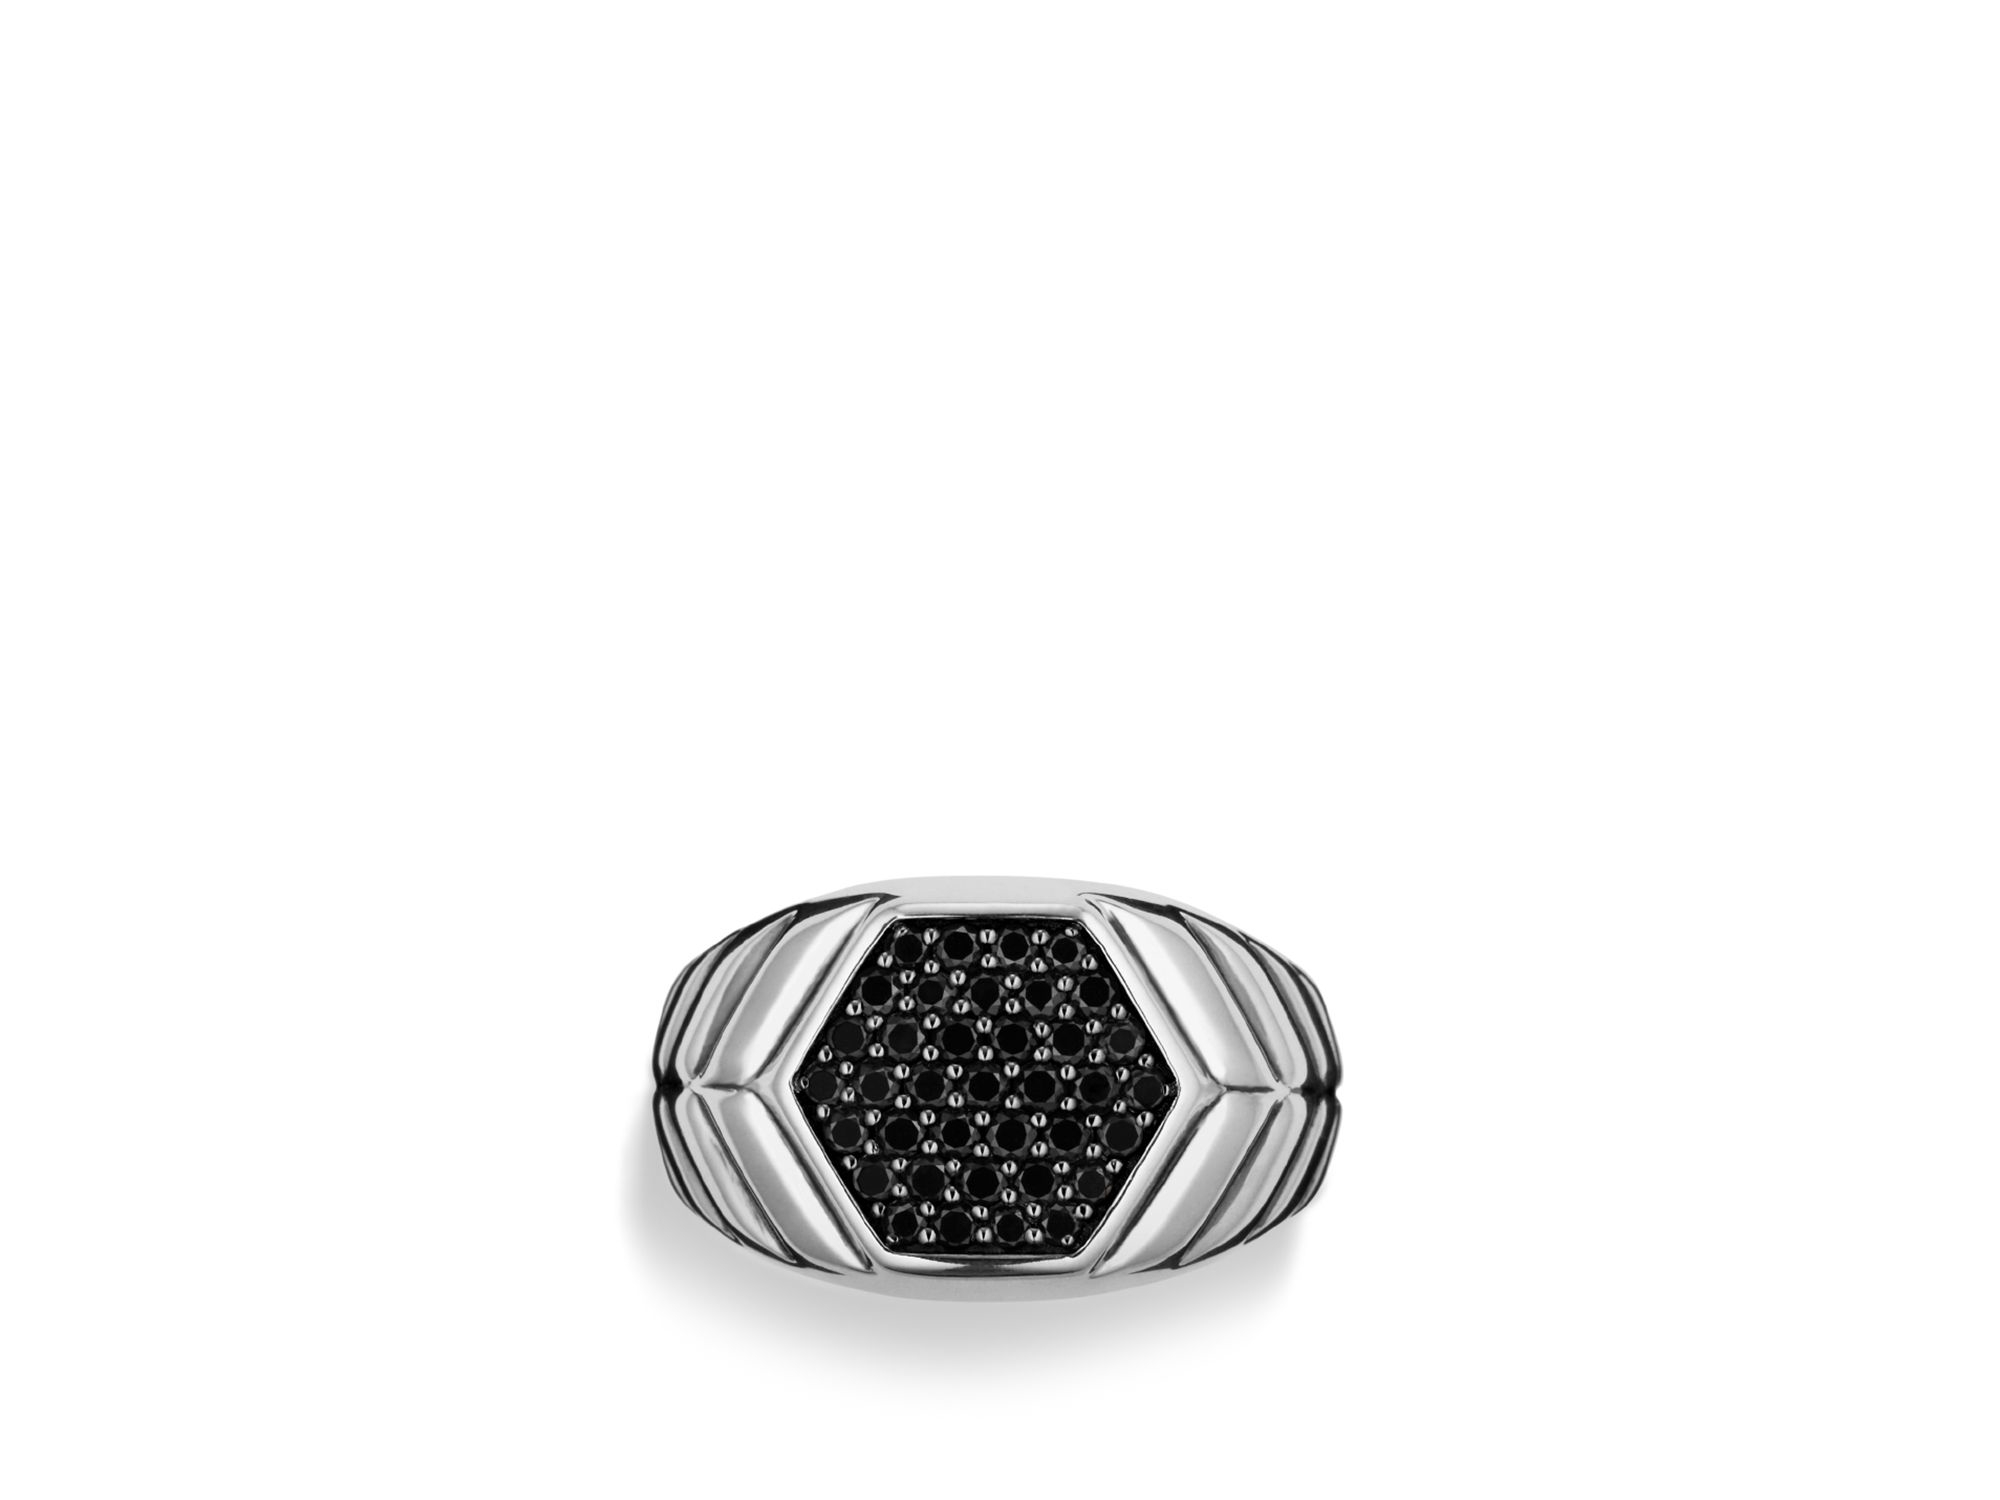 Lyst – David Yurman Modern Chevron Signet Ring With Black Diamonds Regarding 2018 Chevron Signet Rings (View 10 of 15)